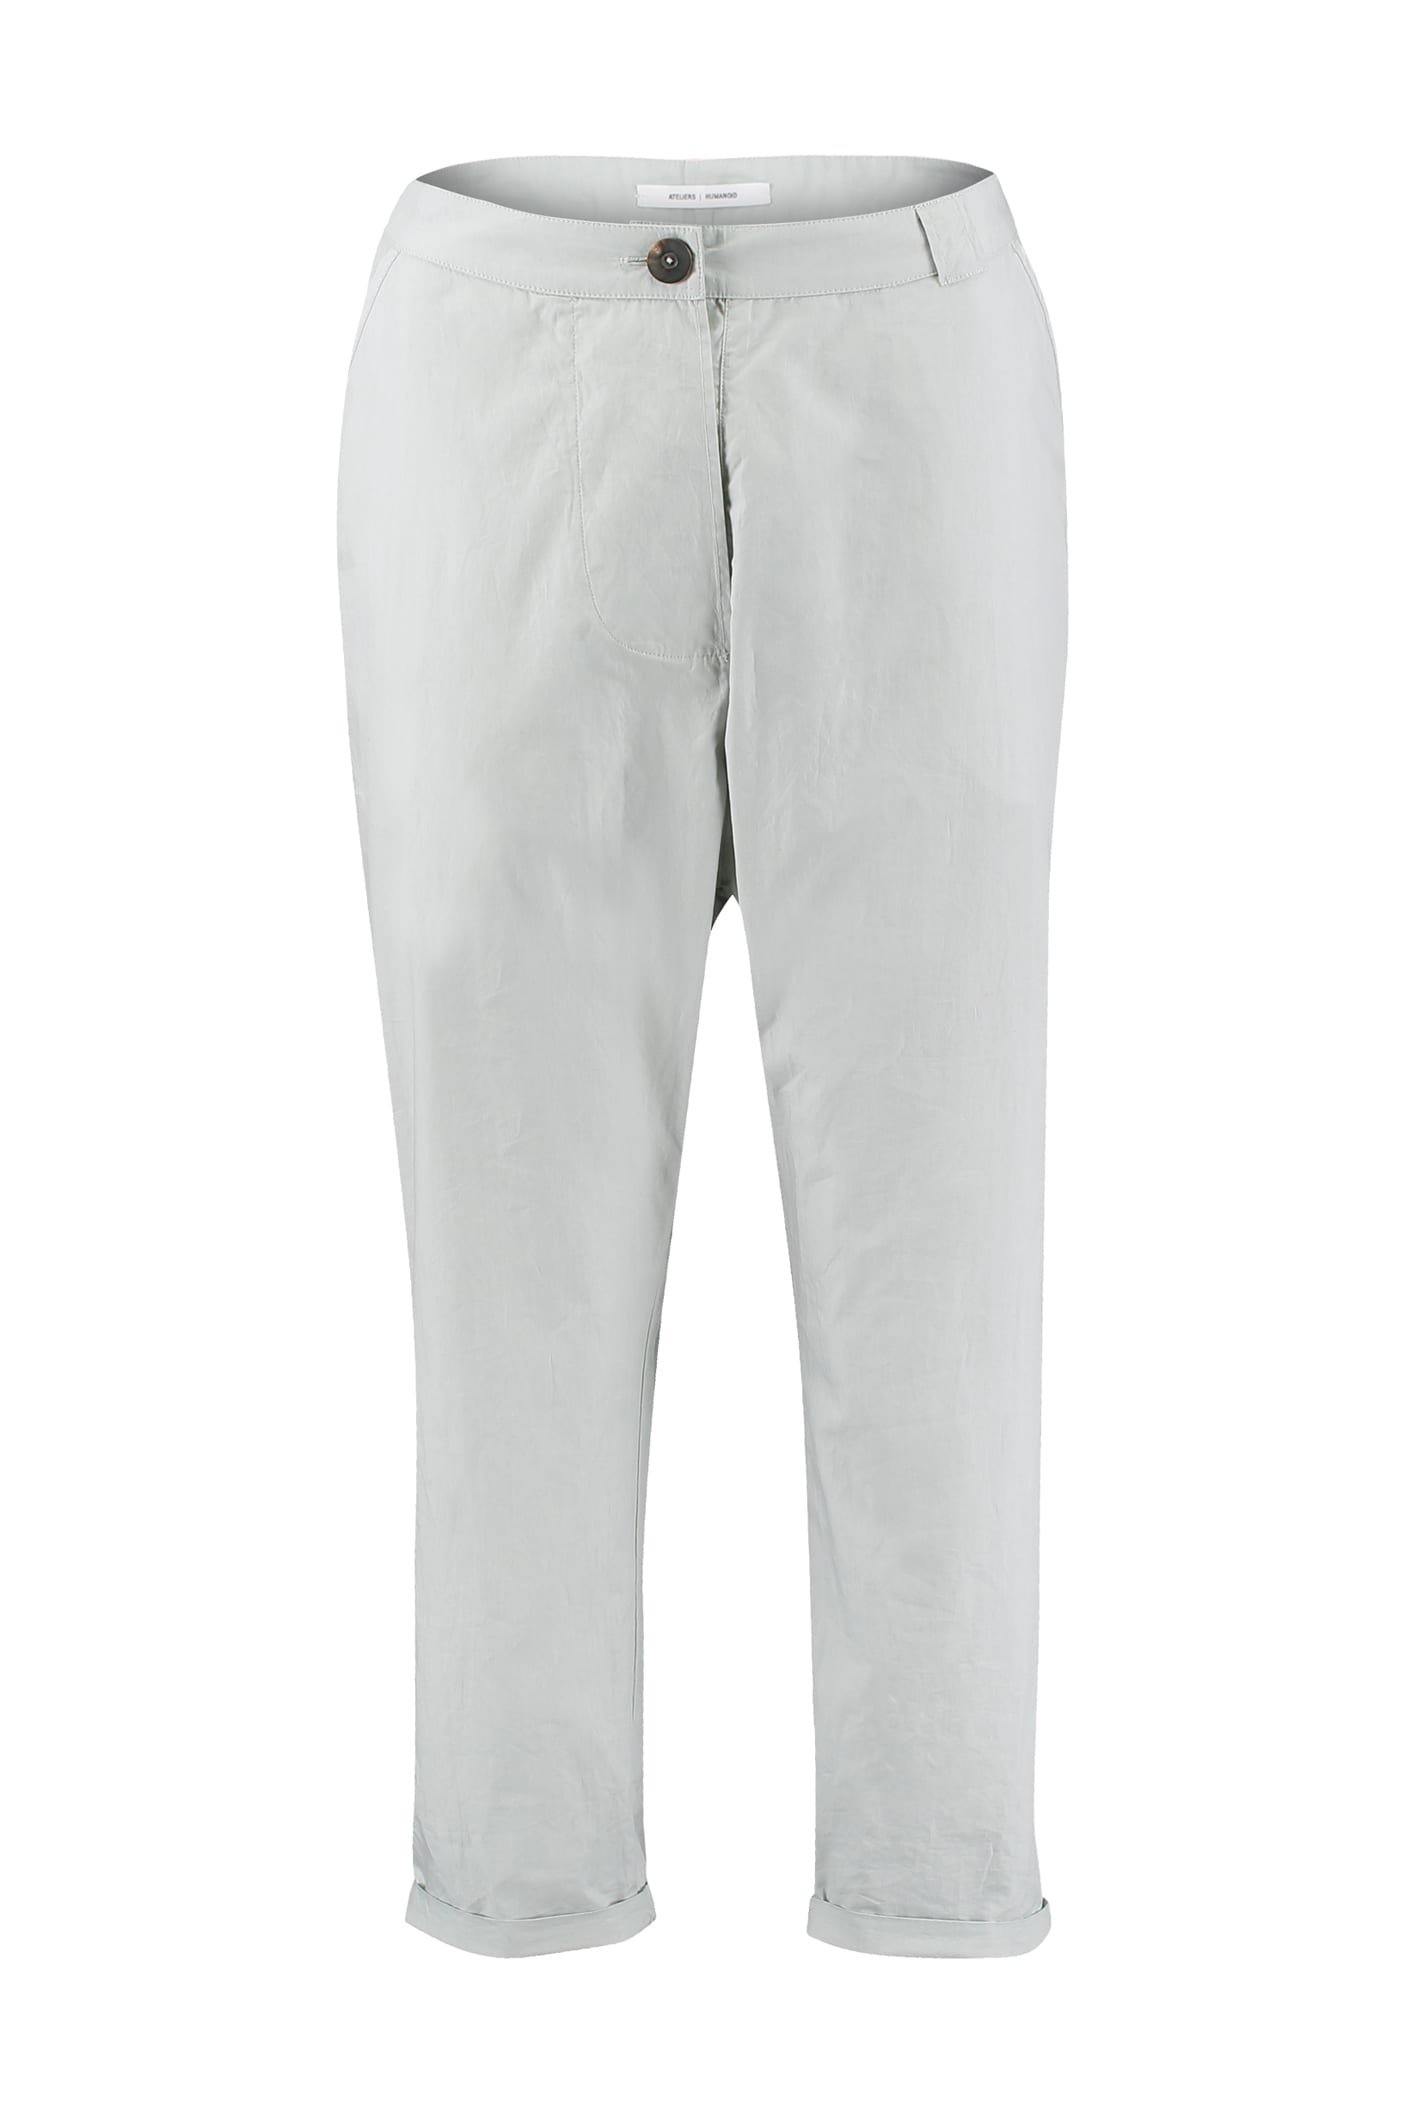 Humanoid Cotton Crisp Trousers in Mist